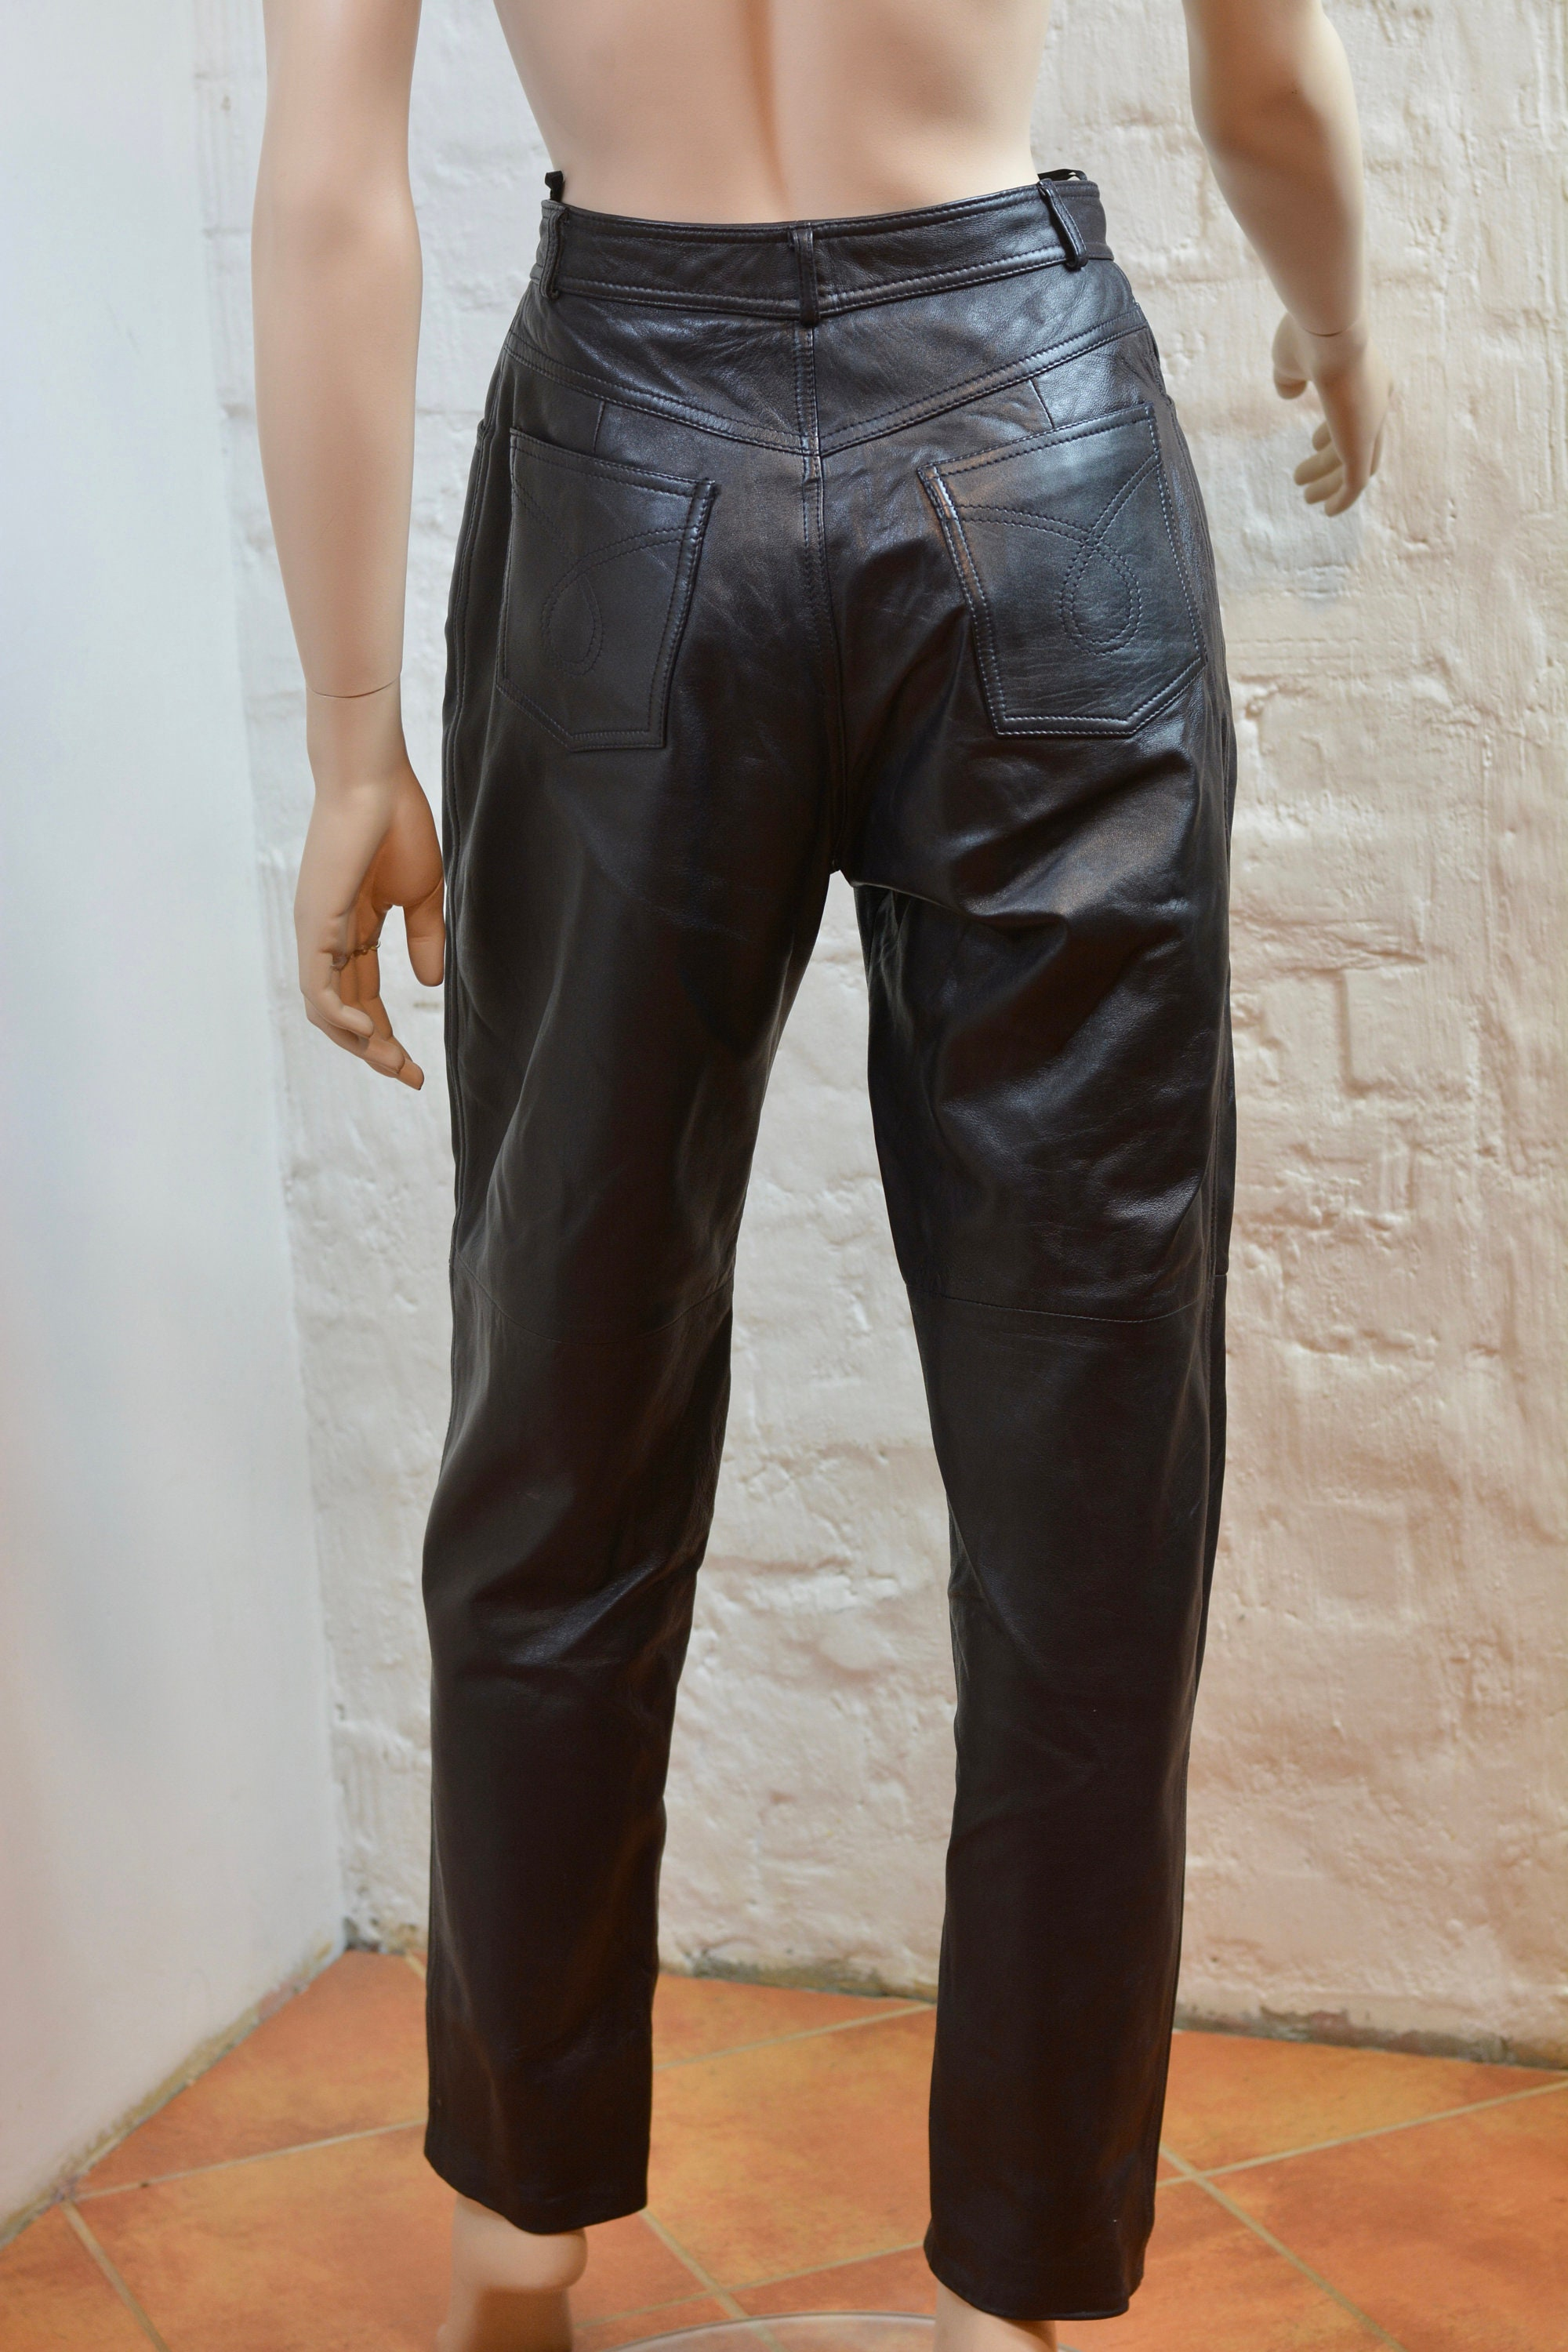 Vintage Biker Leather Pants Genuine Leather Pants Trousers Black Leather Pants Motorcycle Pants Rockstar Leather Fetish Small .